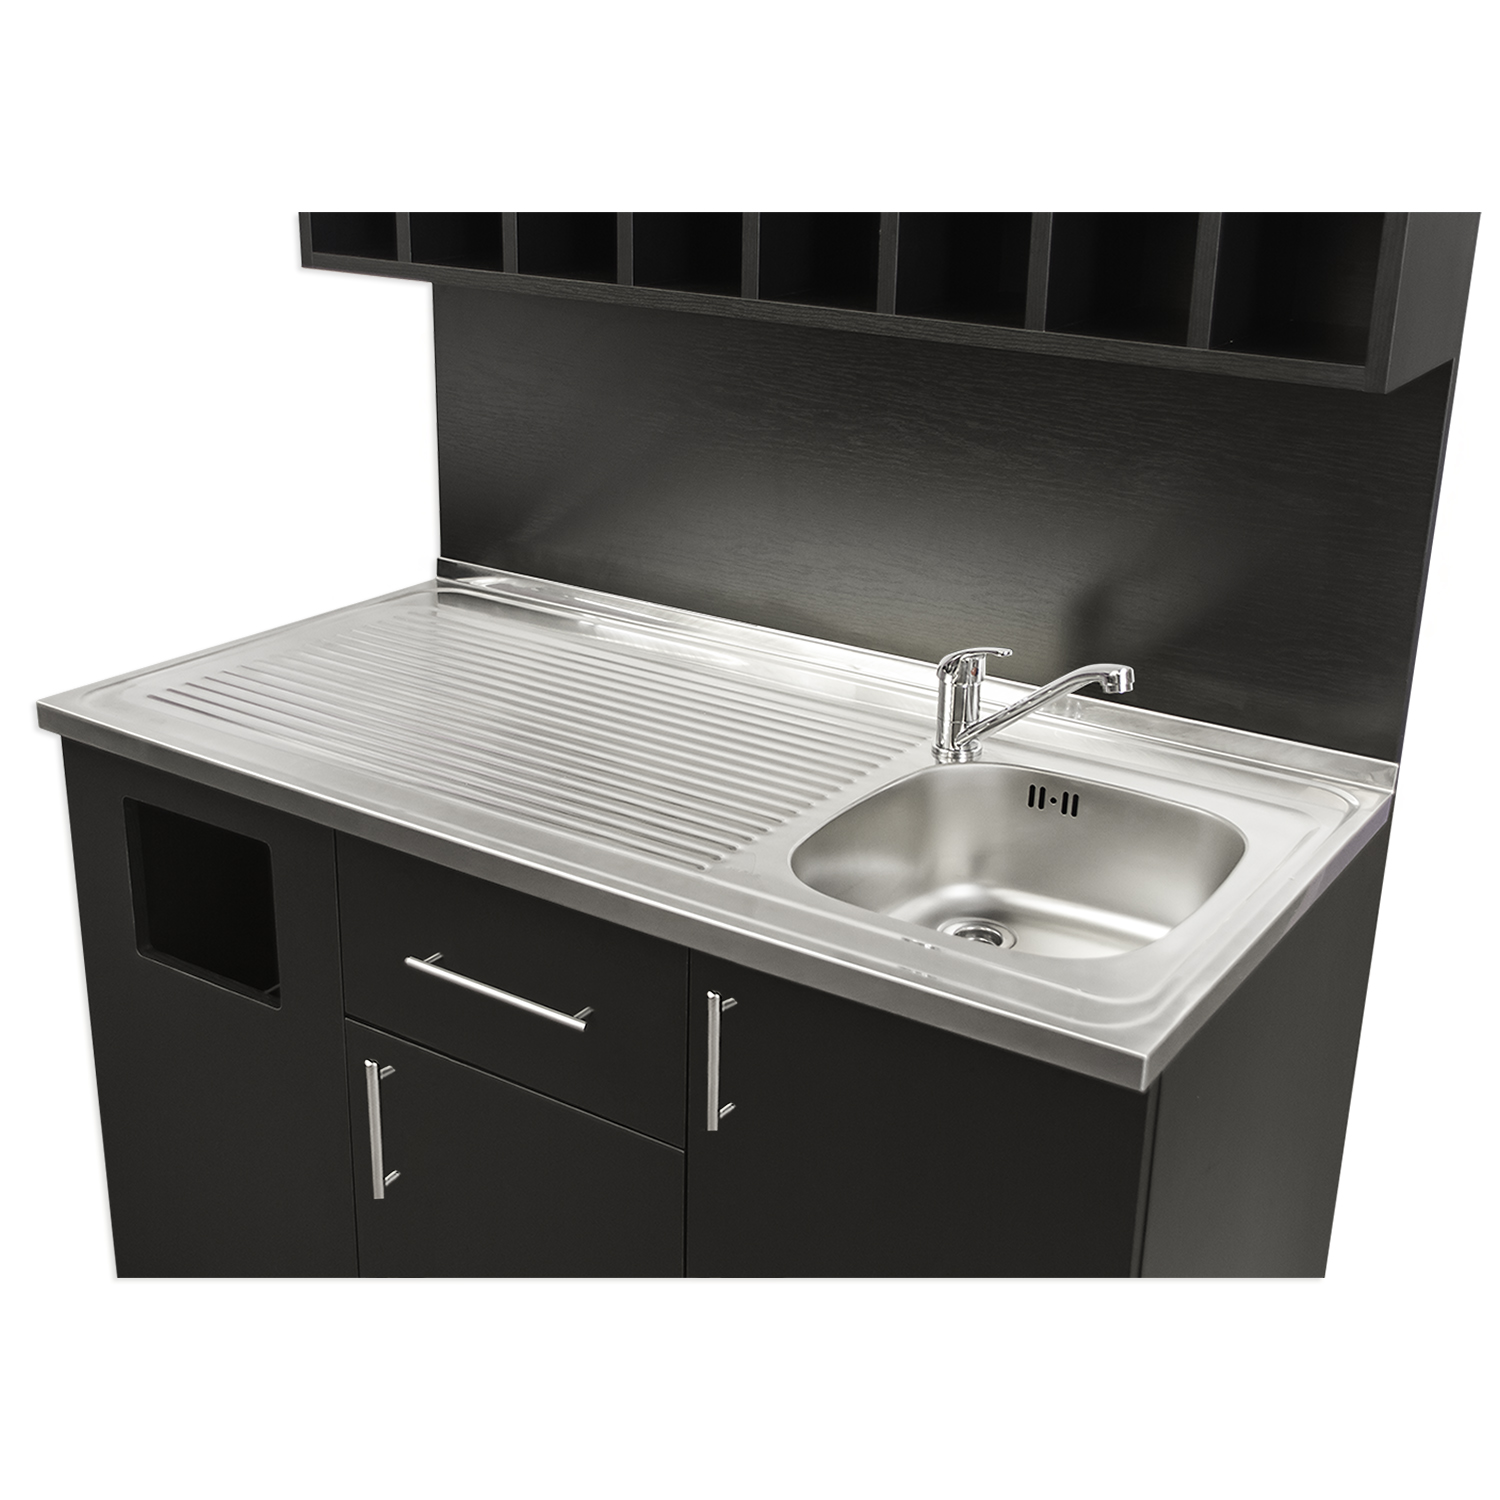 4' Color Mixing Station with Sink and Stainless Steel Counter alternative product image 3